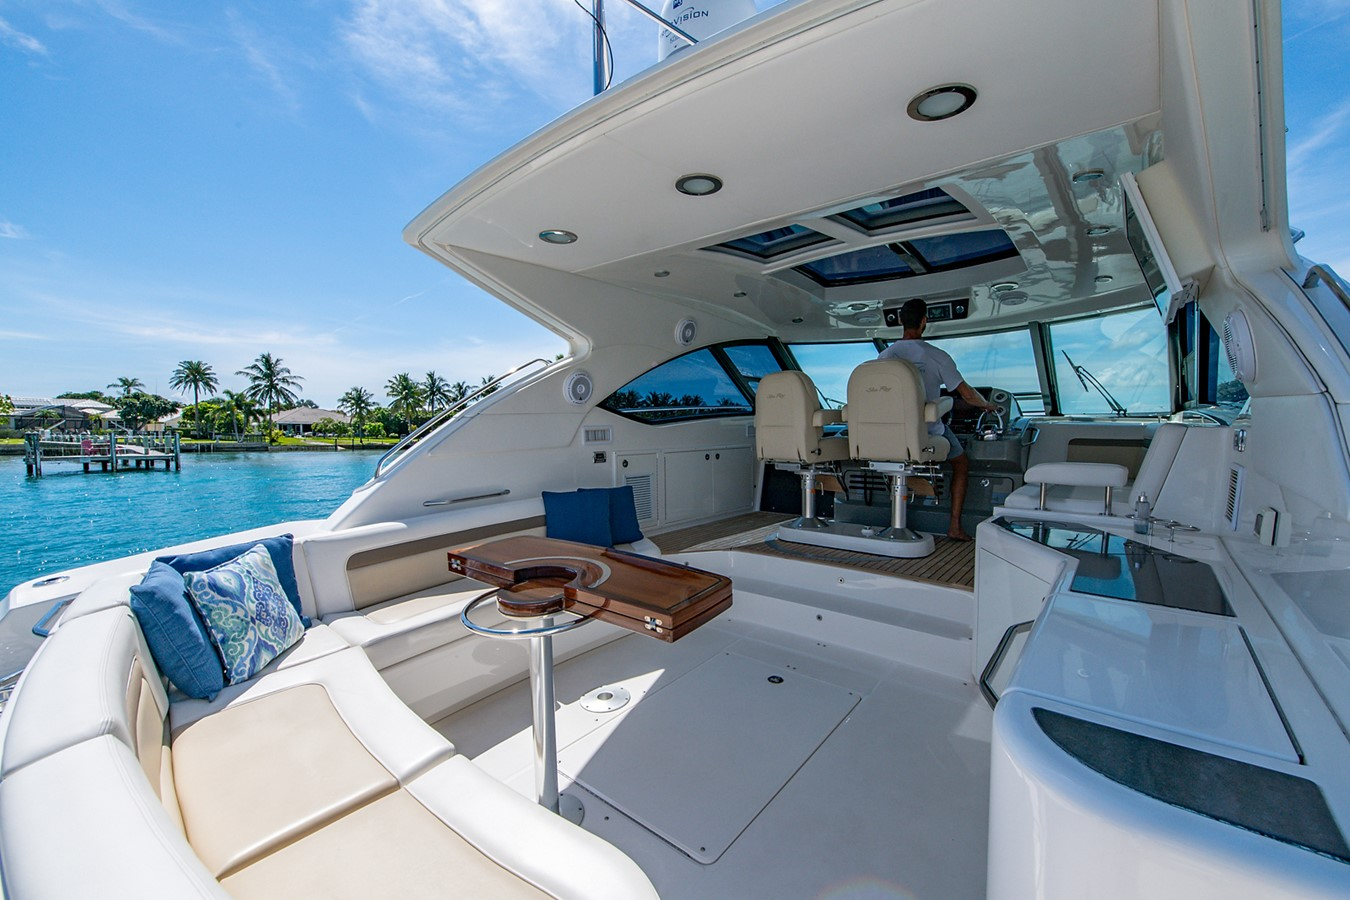 2013 SEA RAY Sundancer Motor Yacht 2531139